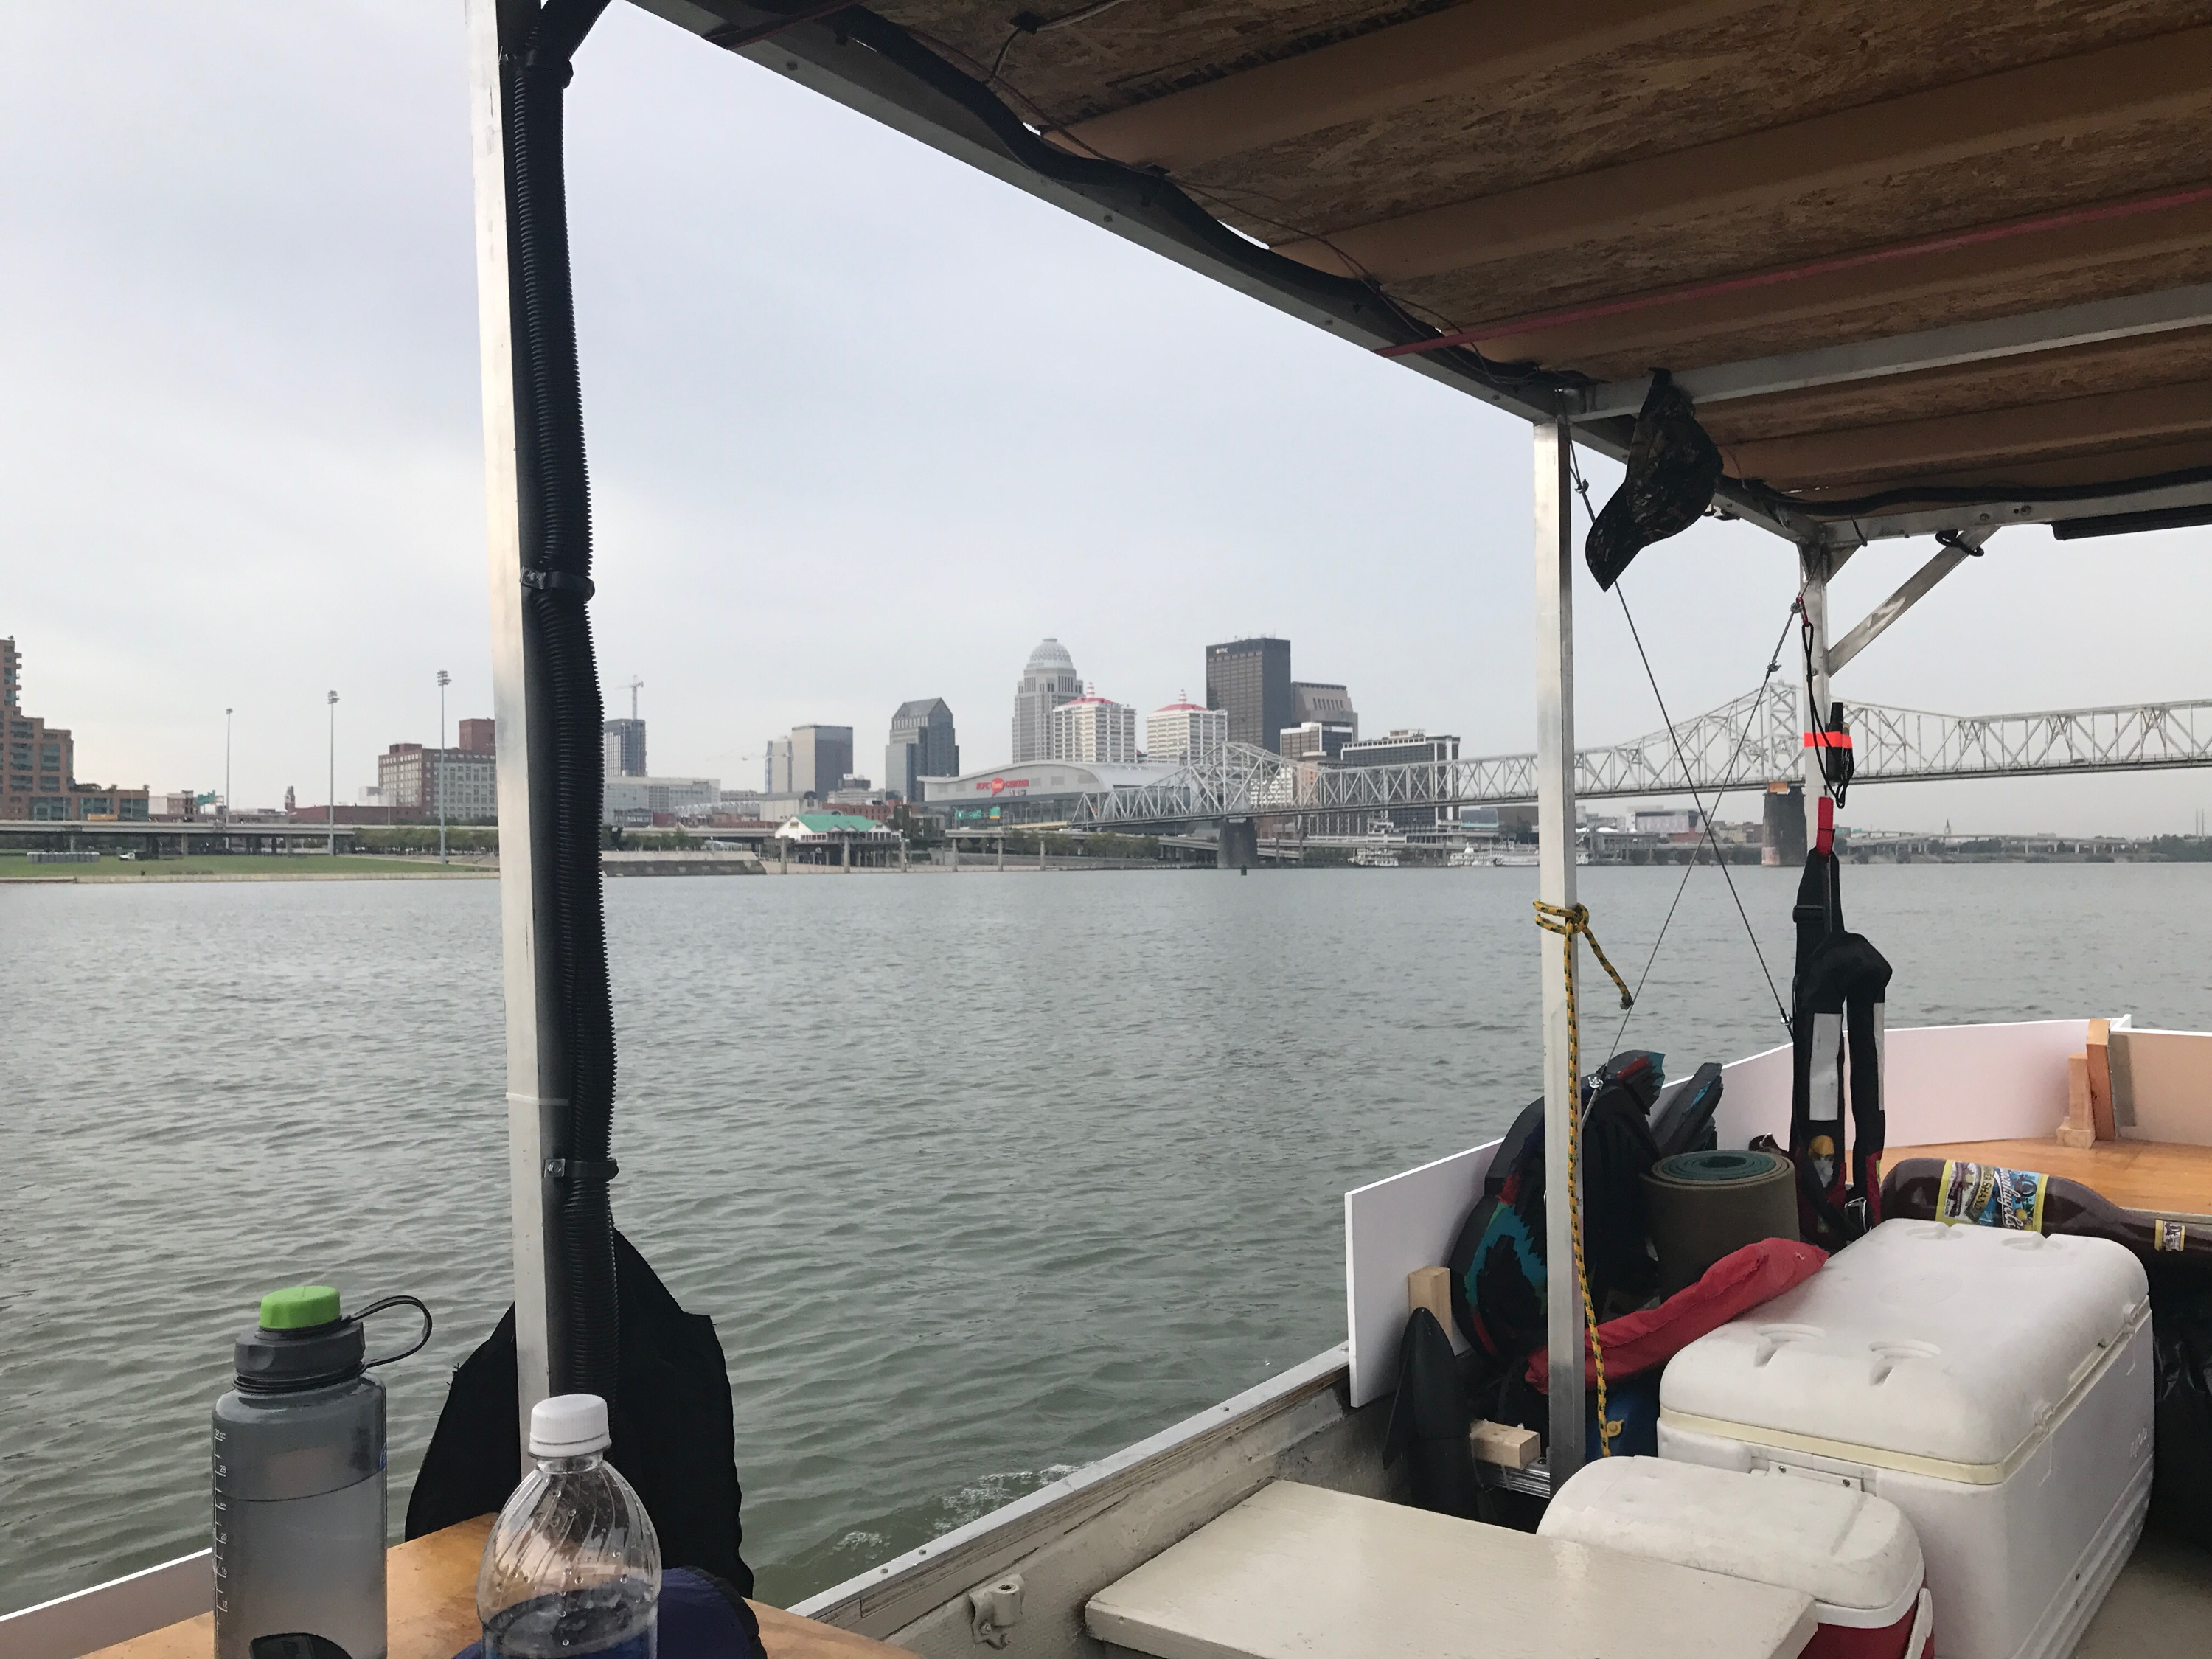 View of Louisville Kentucky from the River Record Jon Boat